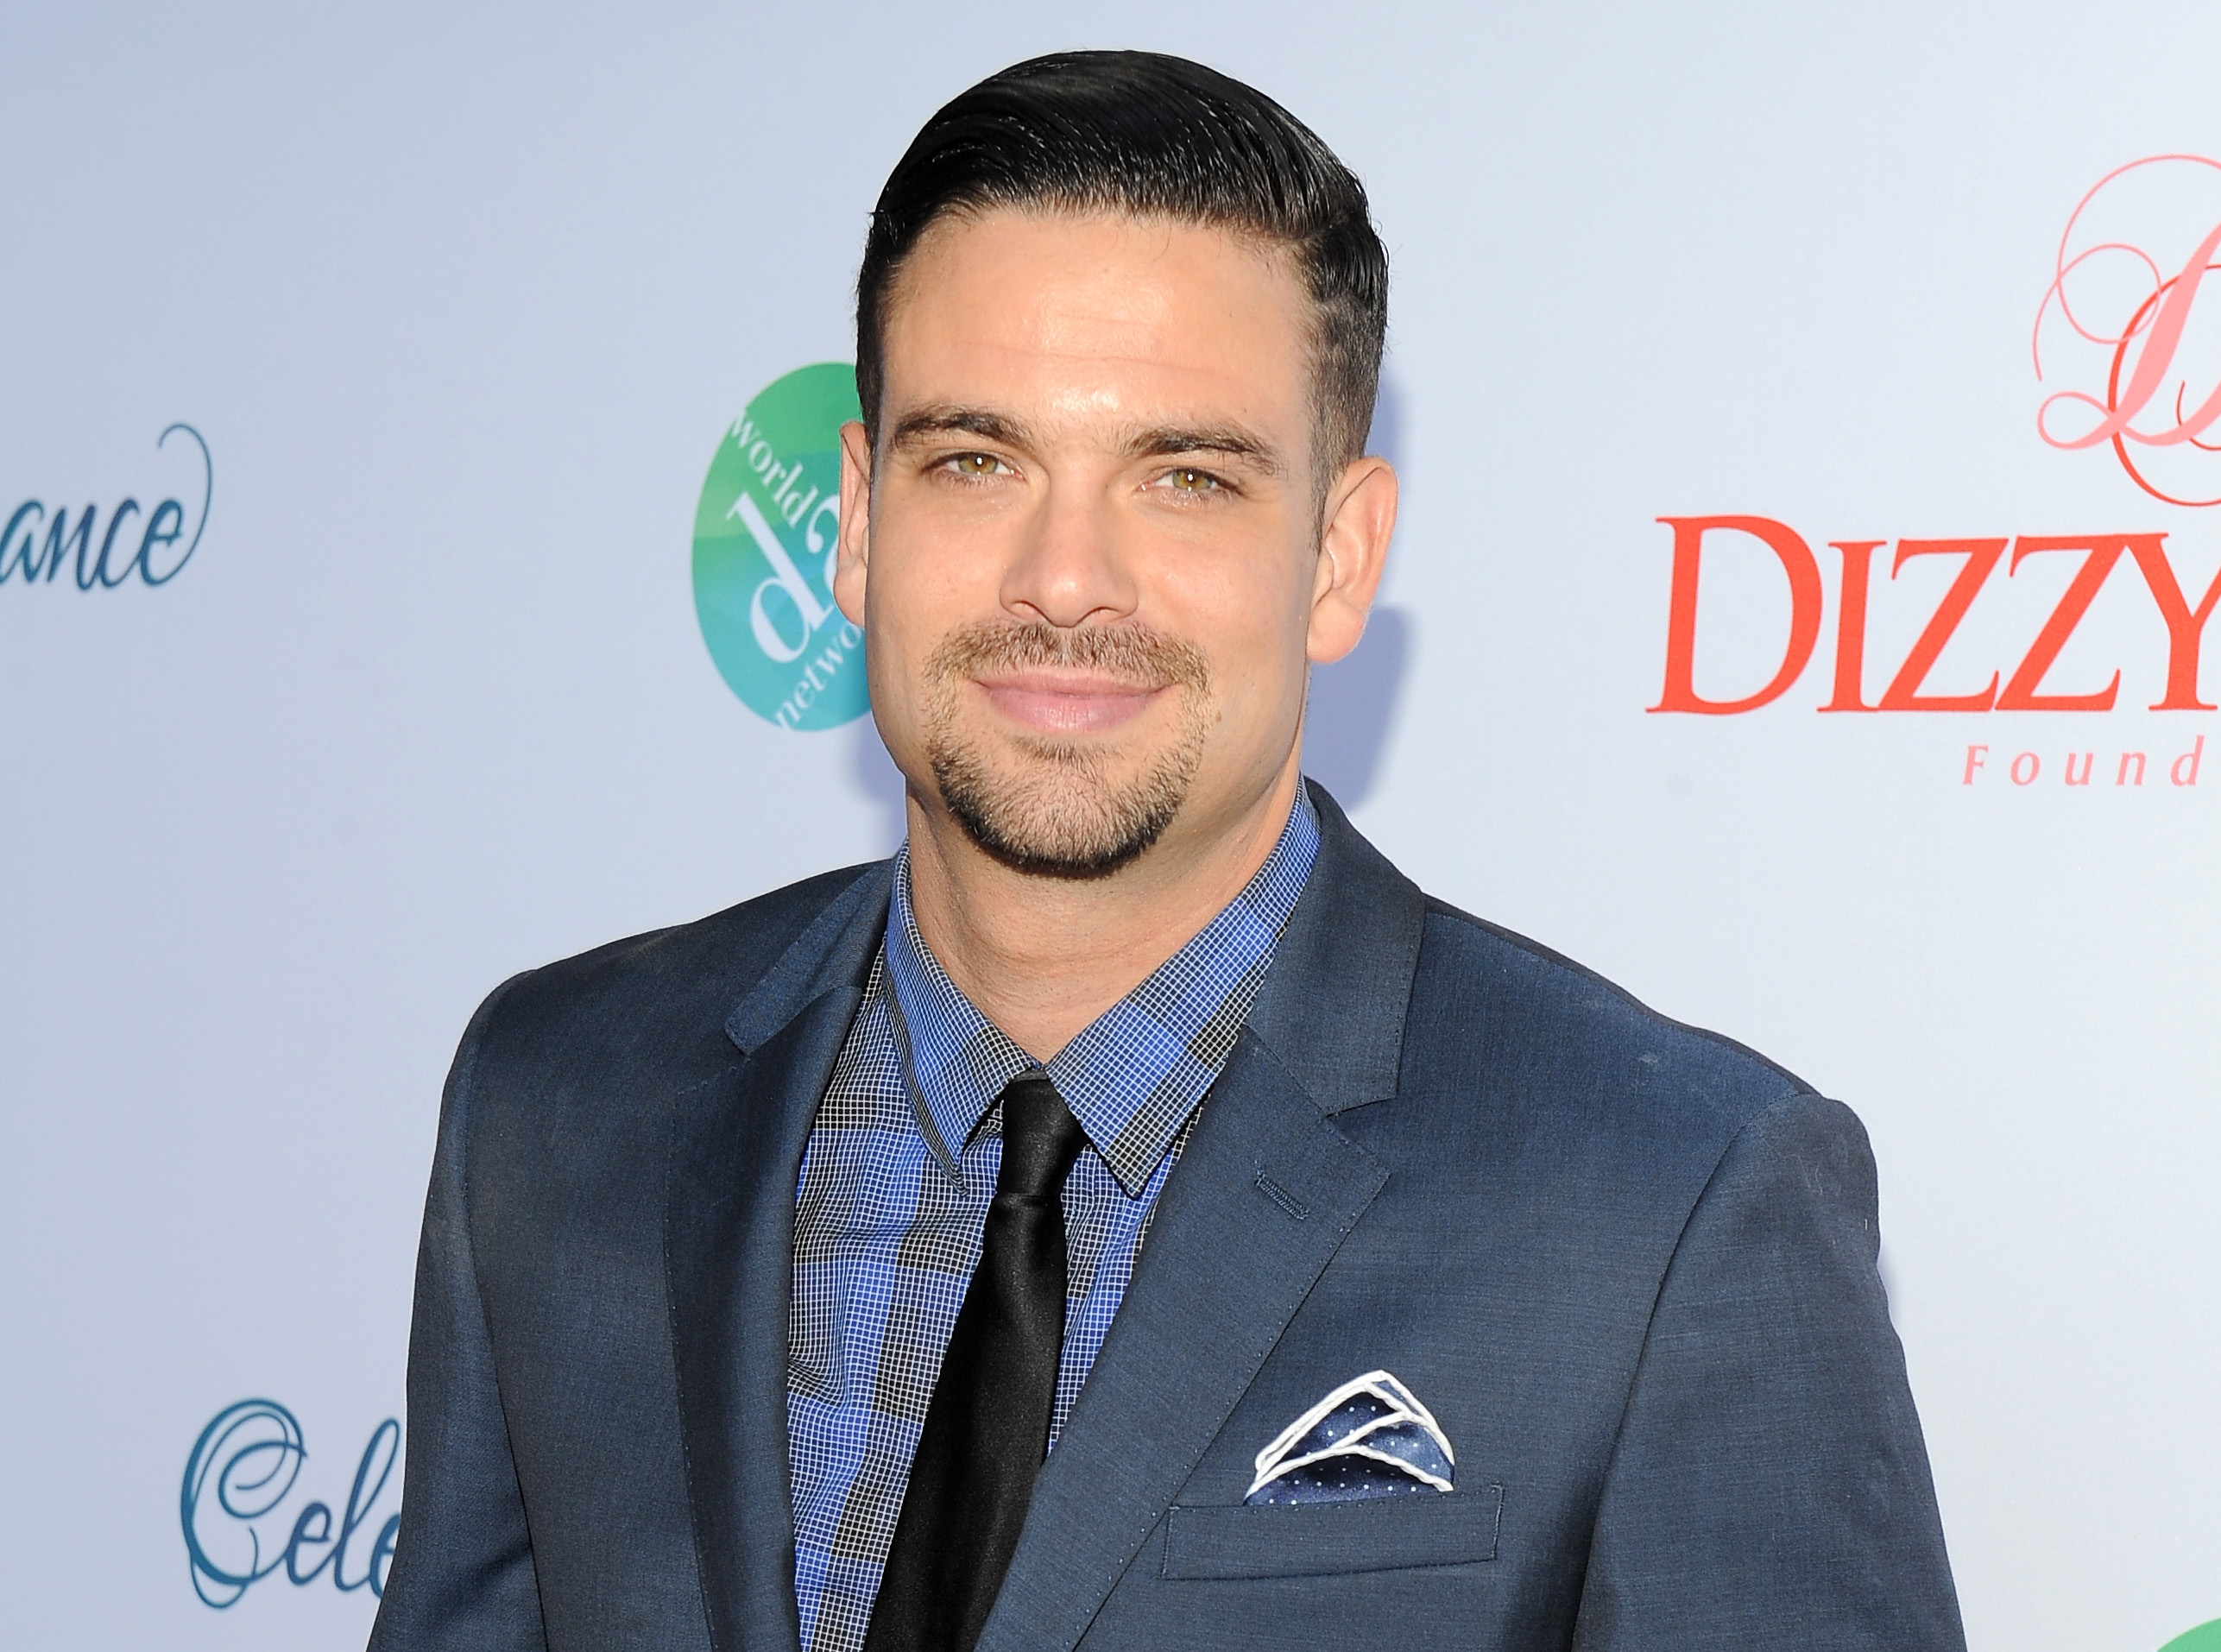 Mark Salling's victims will not receive restitution, according to an attorney